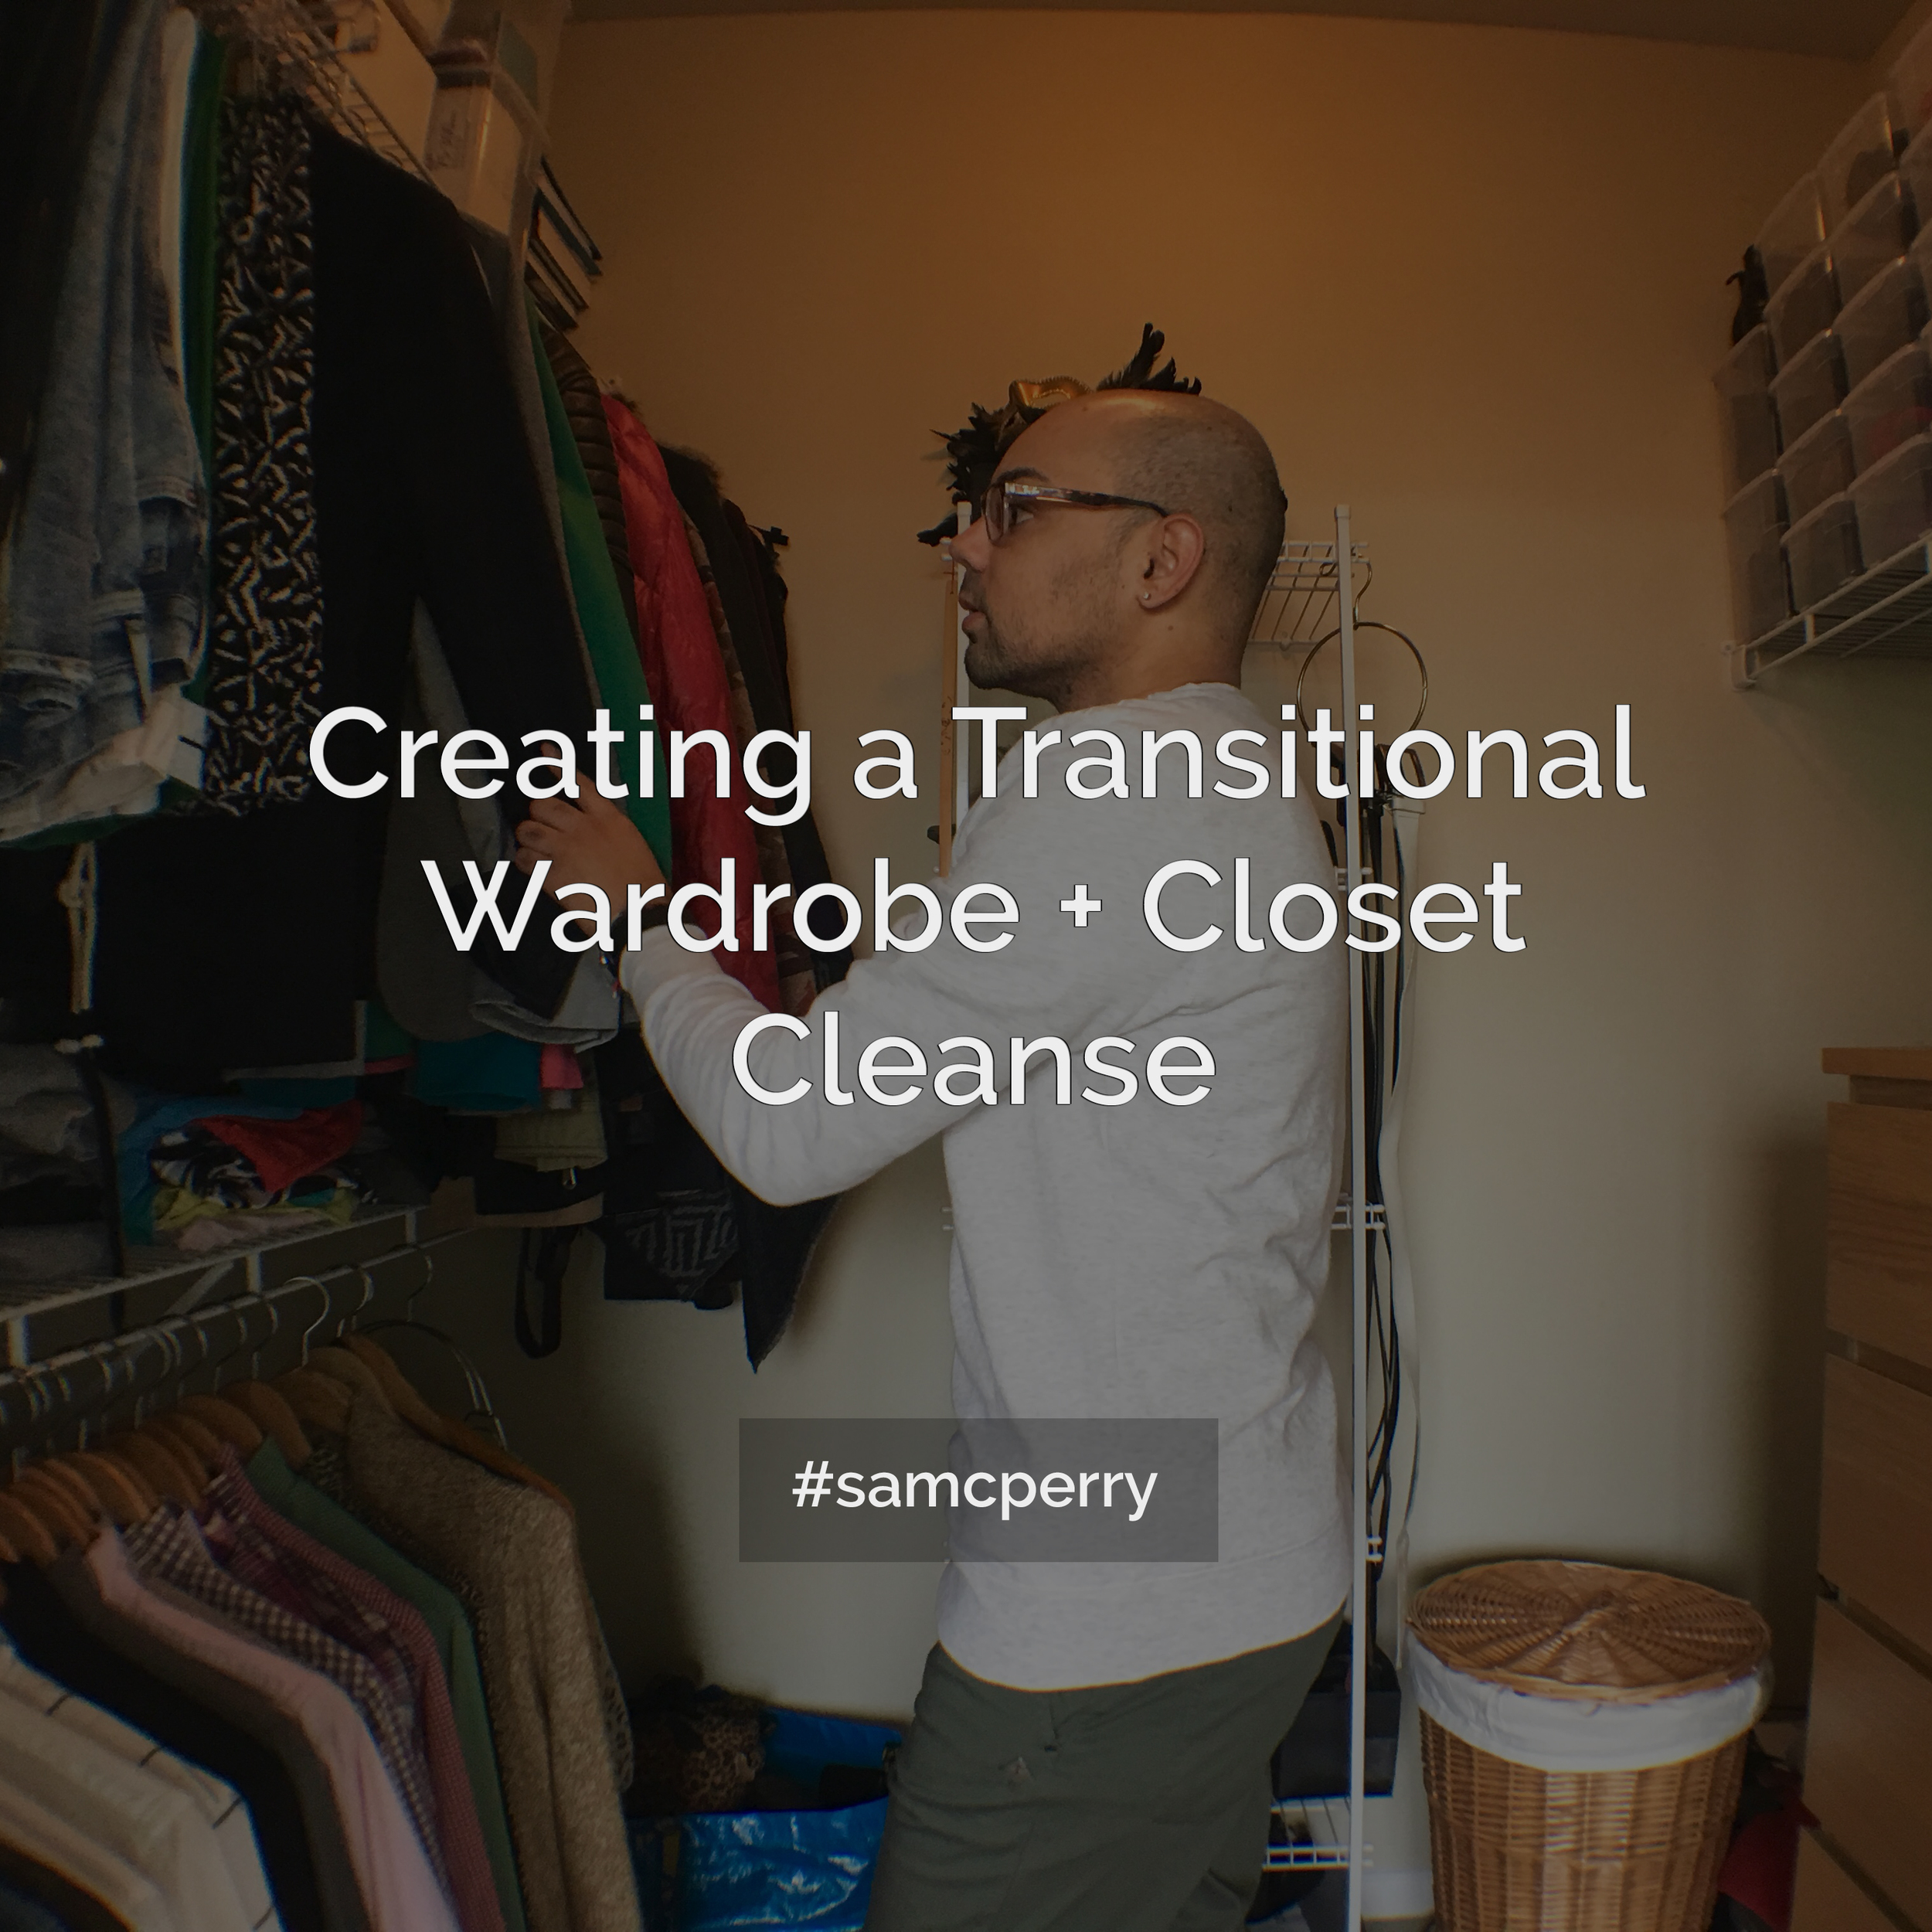 sam-c-perry-guide-to-creating-a-transitional-wardrobe-ebook